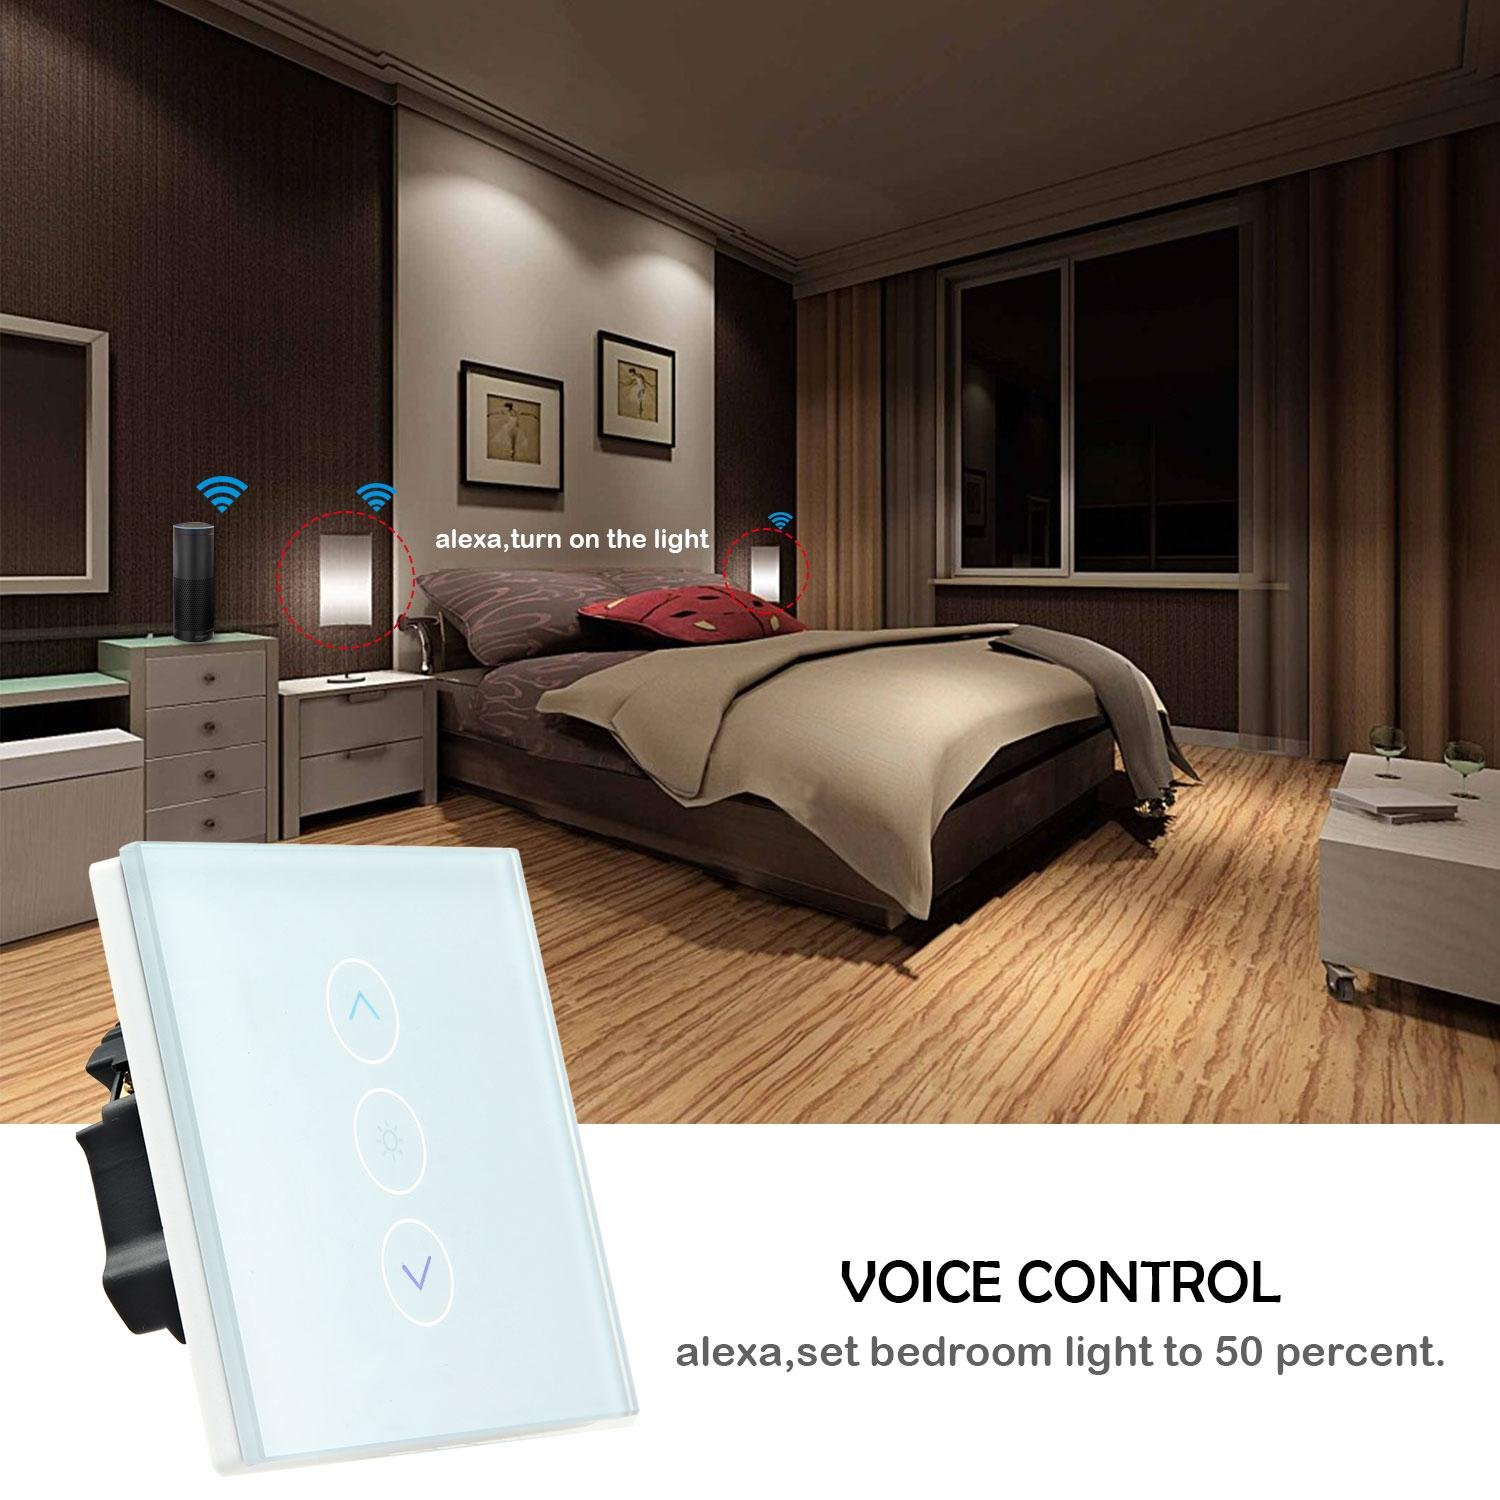 FOONEE Wifi Dimmer Switch, Home Decoration Smart Dimmer Switch with Alexa, Google Home Touch Switch Outlet Wifi Smart Lighting Control for Bedroom, Kitchen, Living Room(Neutral Wiring Required) by FOONEE (Image #3)